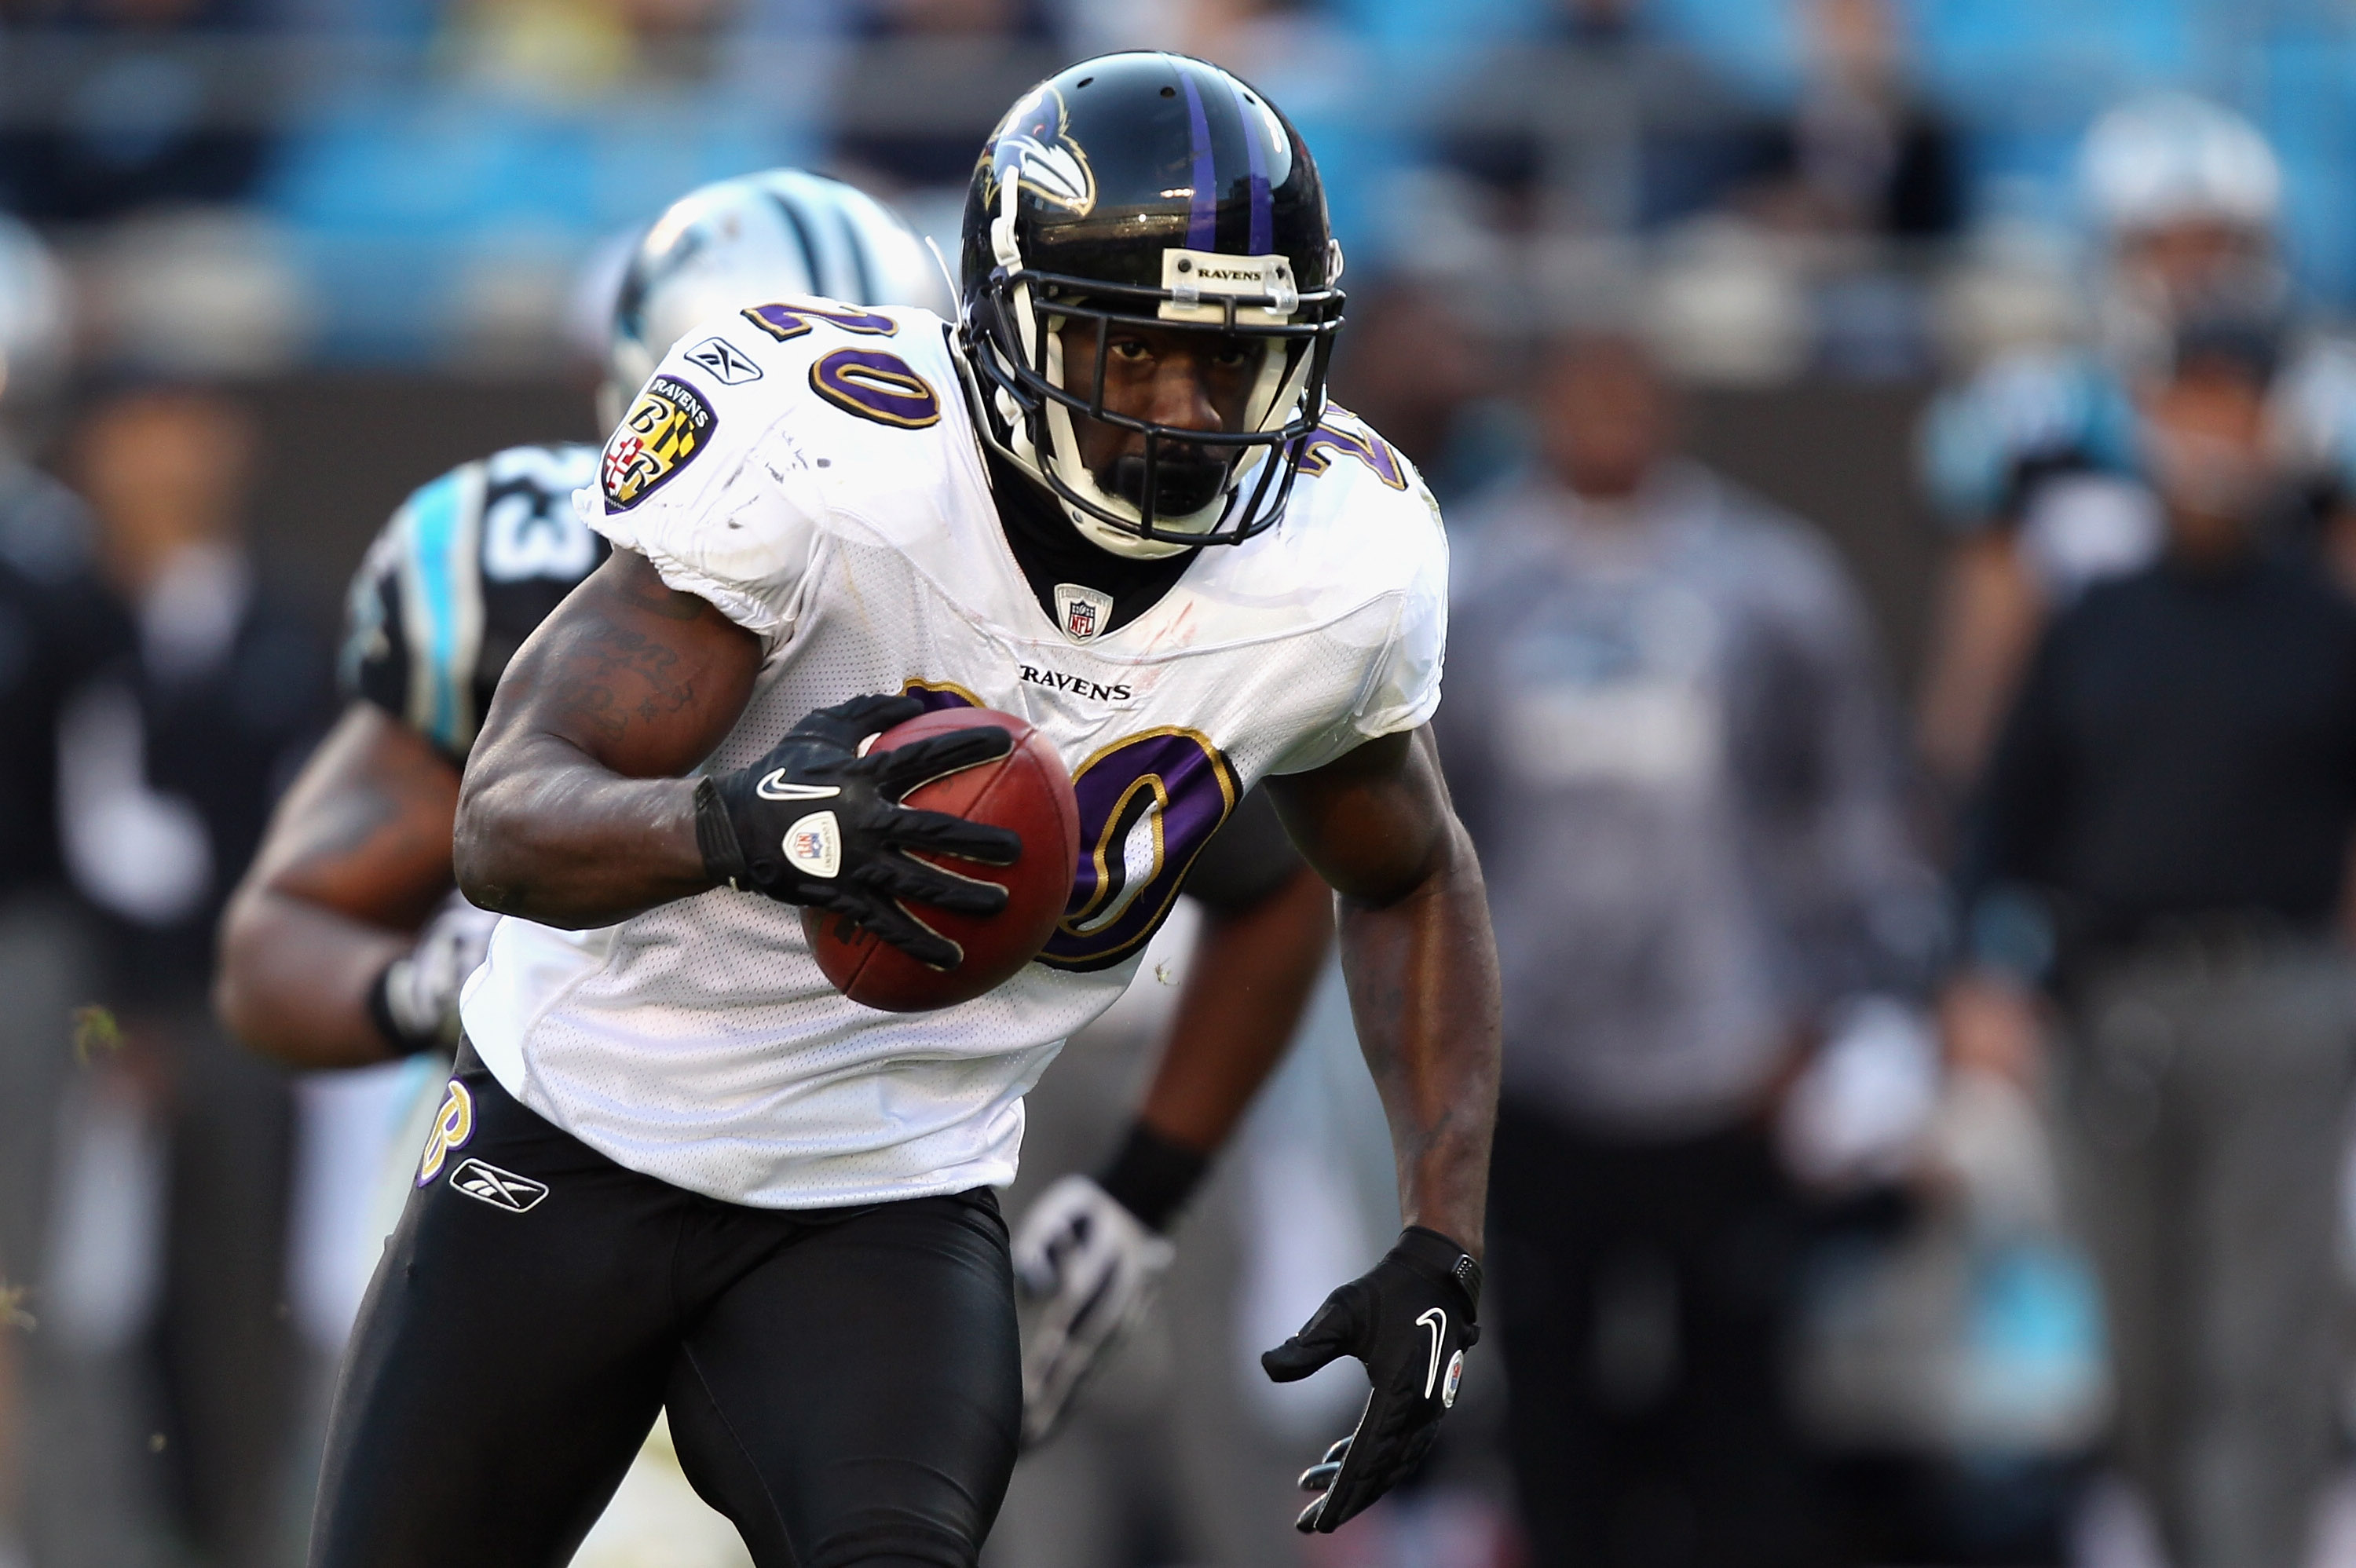 CHARLOTTE, NC - NOVEMBER 21:  Ed Reed #20 of the Baltimore Ravens against the Carolina Panthers at Bank of America Stadium on November 21, 2010 in Charlotte, North Carolina.  (Photo by Streeter Lecka/Getty Images)